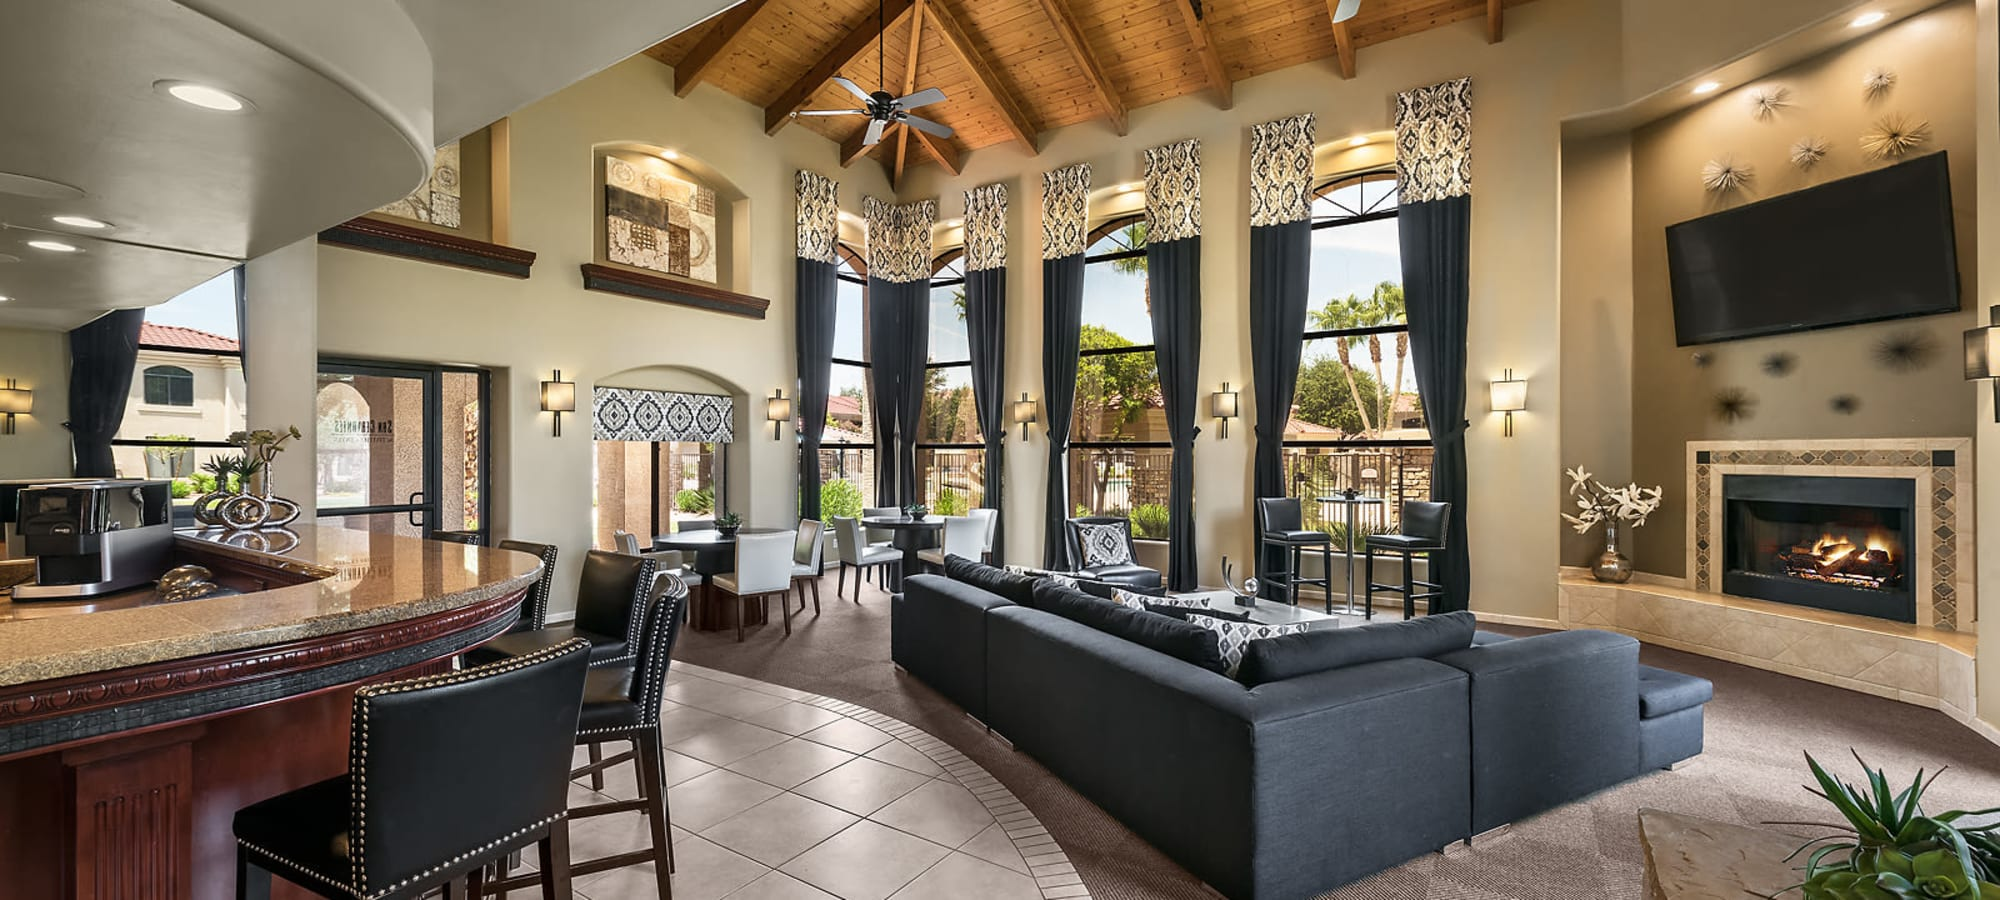 Spacious Clubhouse at San Cervantes in Chandler, Arizona